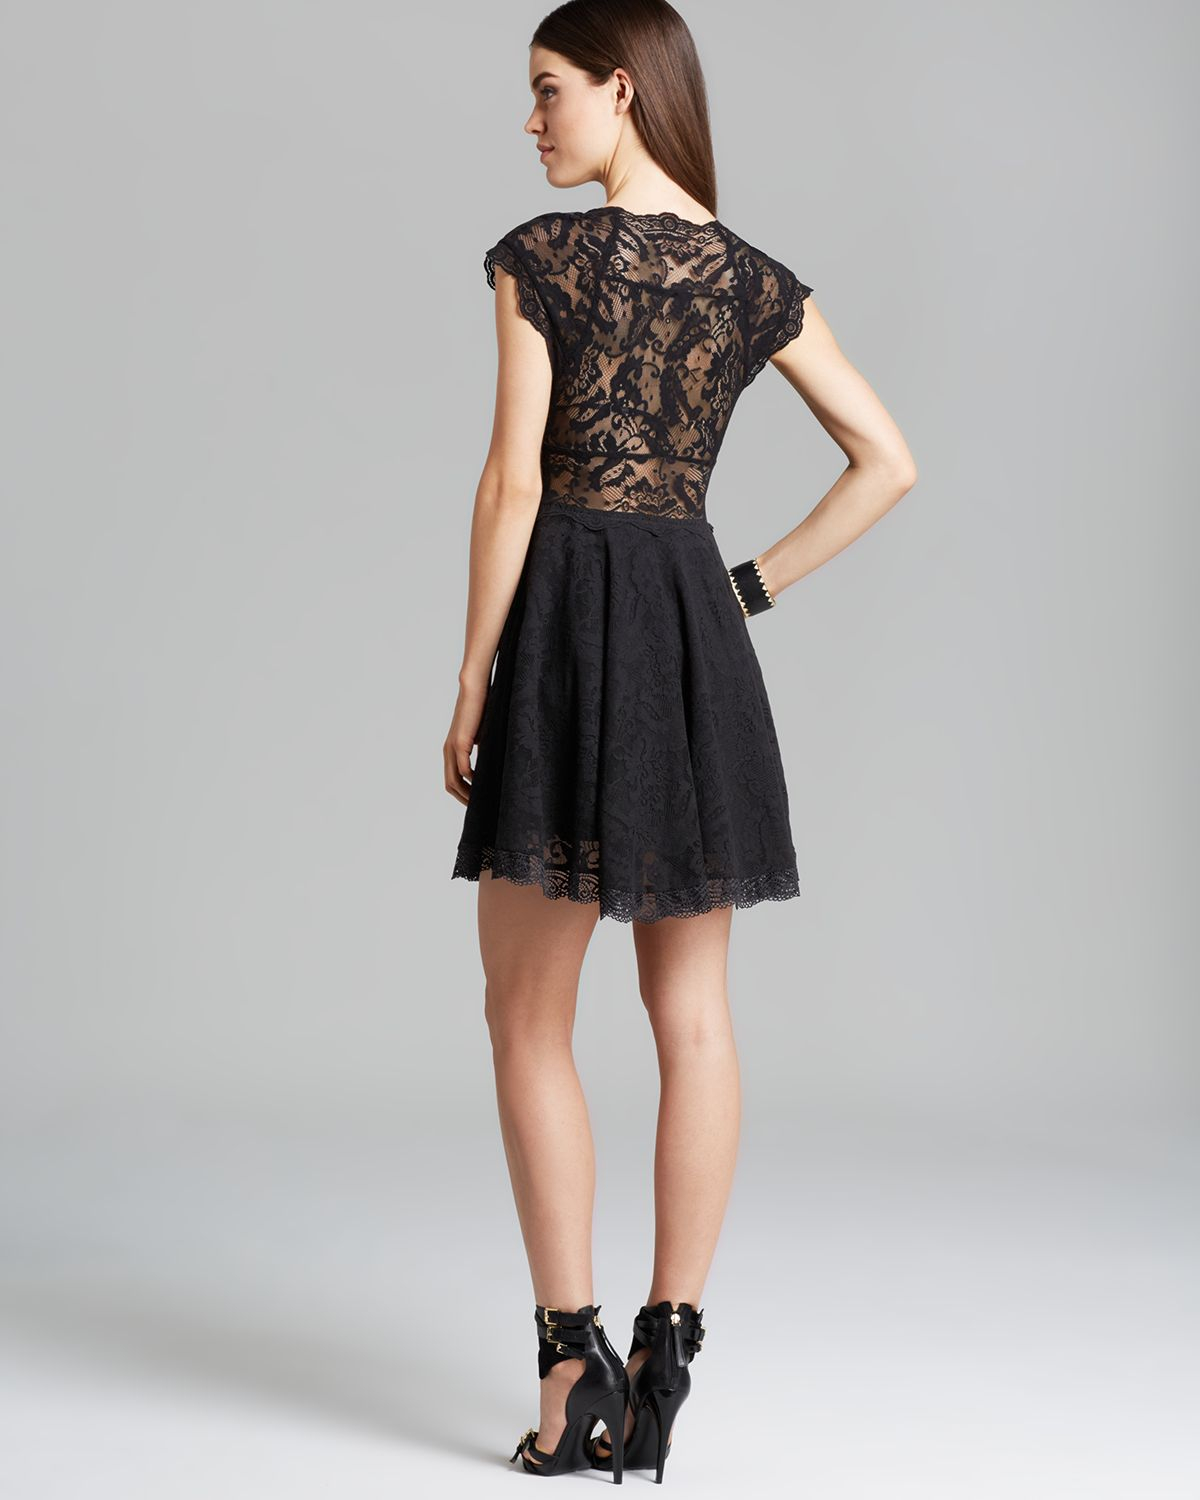 e827a3bd604c91 Guess Dress Amber Lace in Black - Lyst